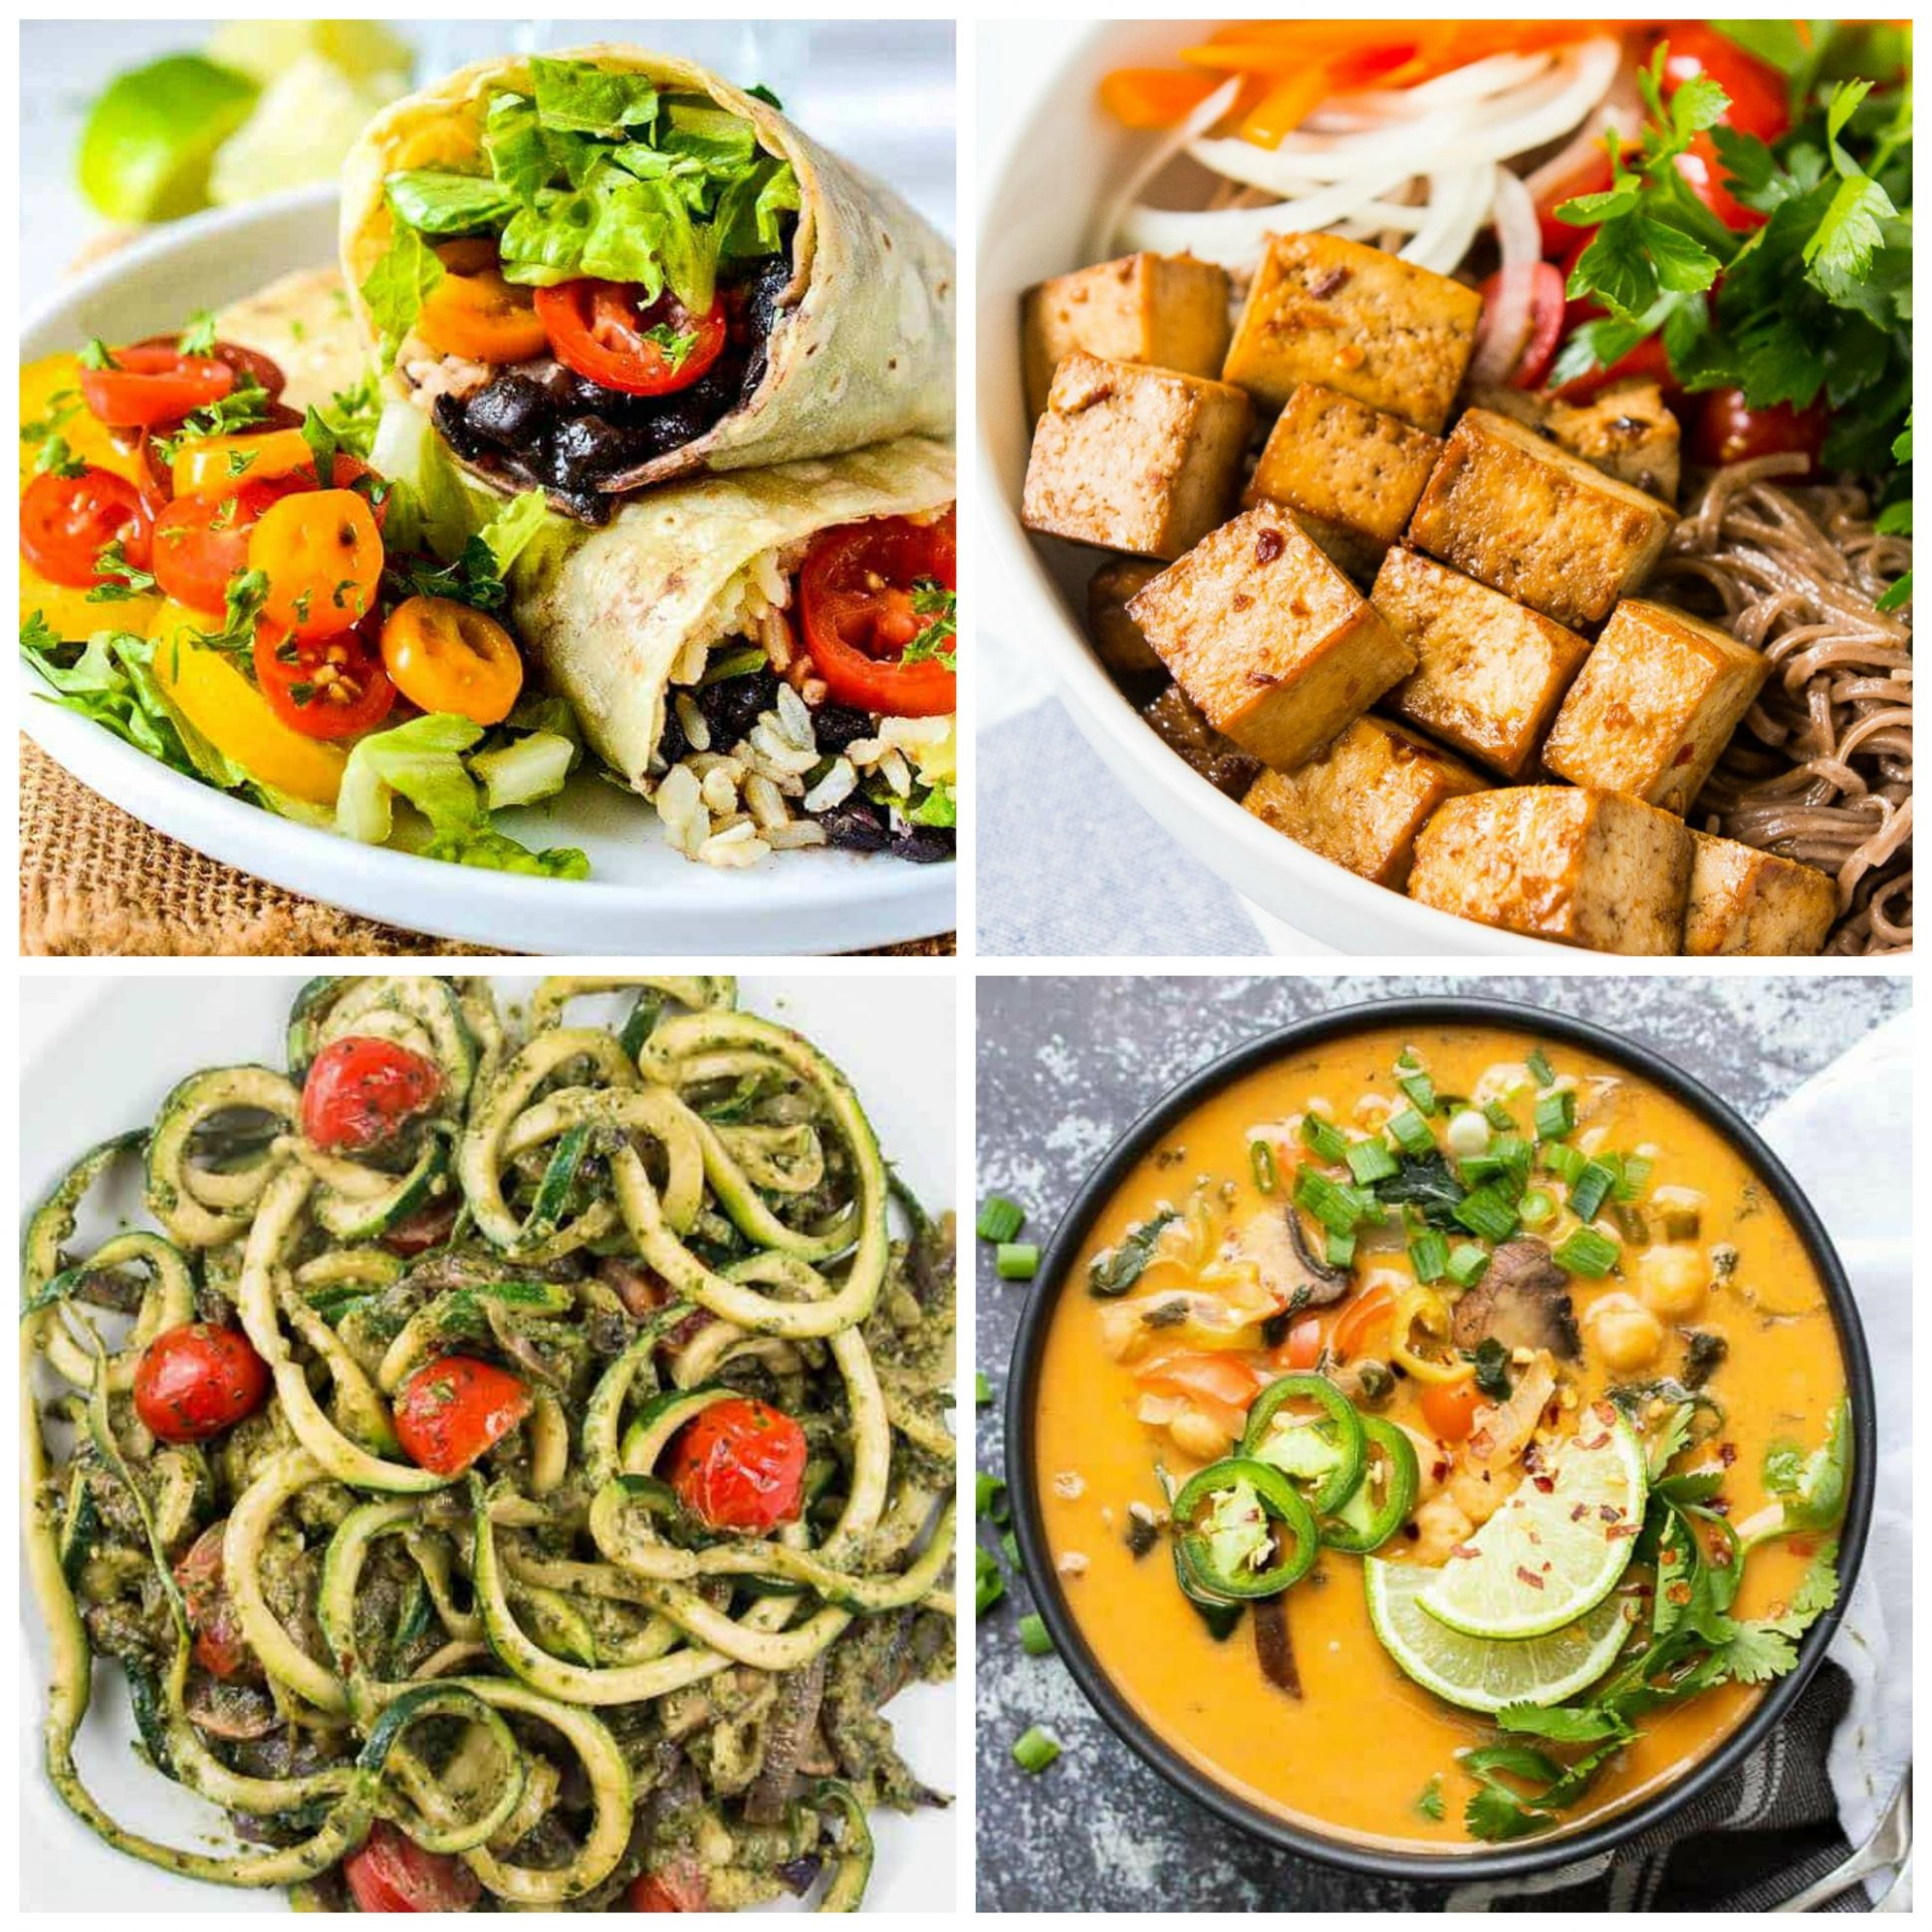 8 AMAZING Vegan Meals for Weight Loss (Gluten-Free & Low-Calorie) - Recipes For Weight Loss Meals